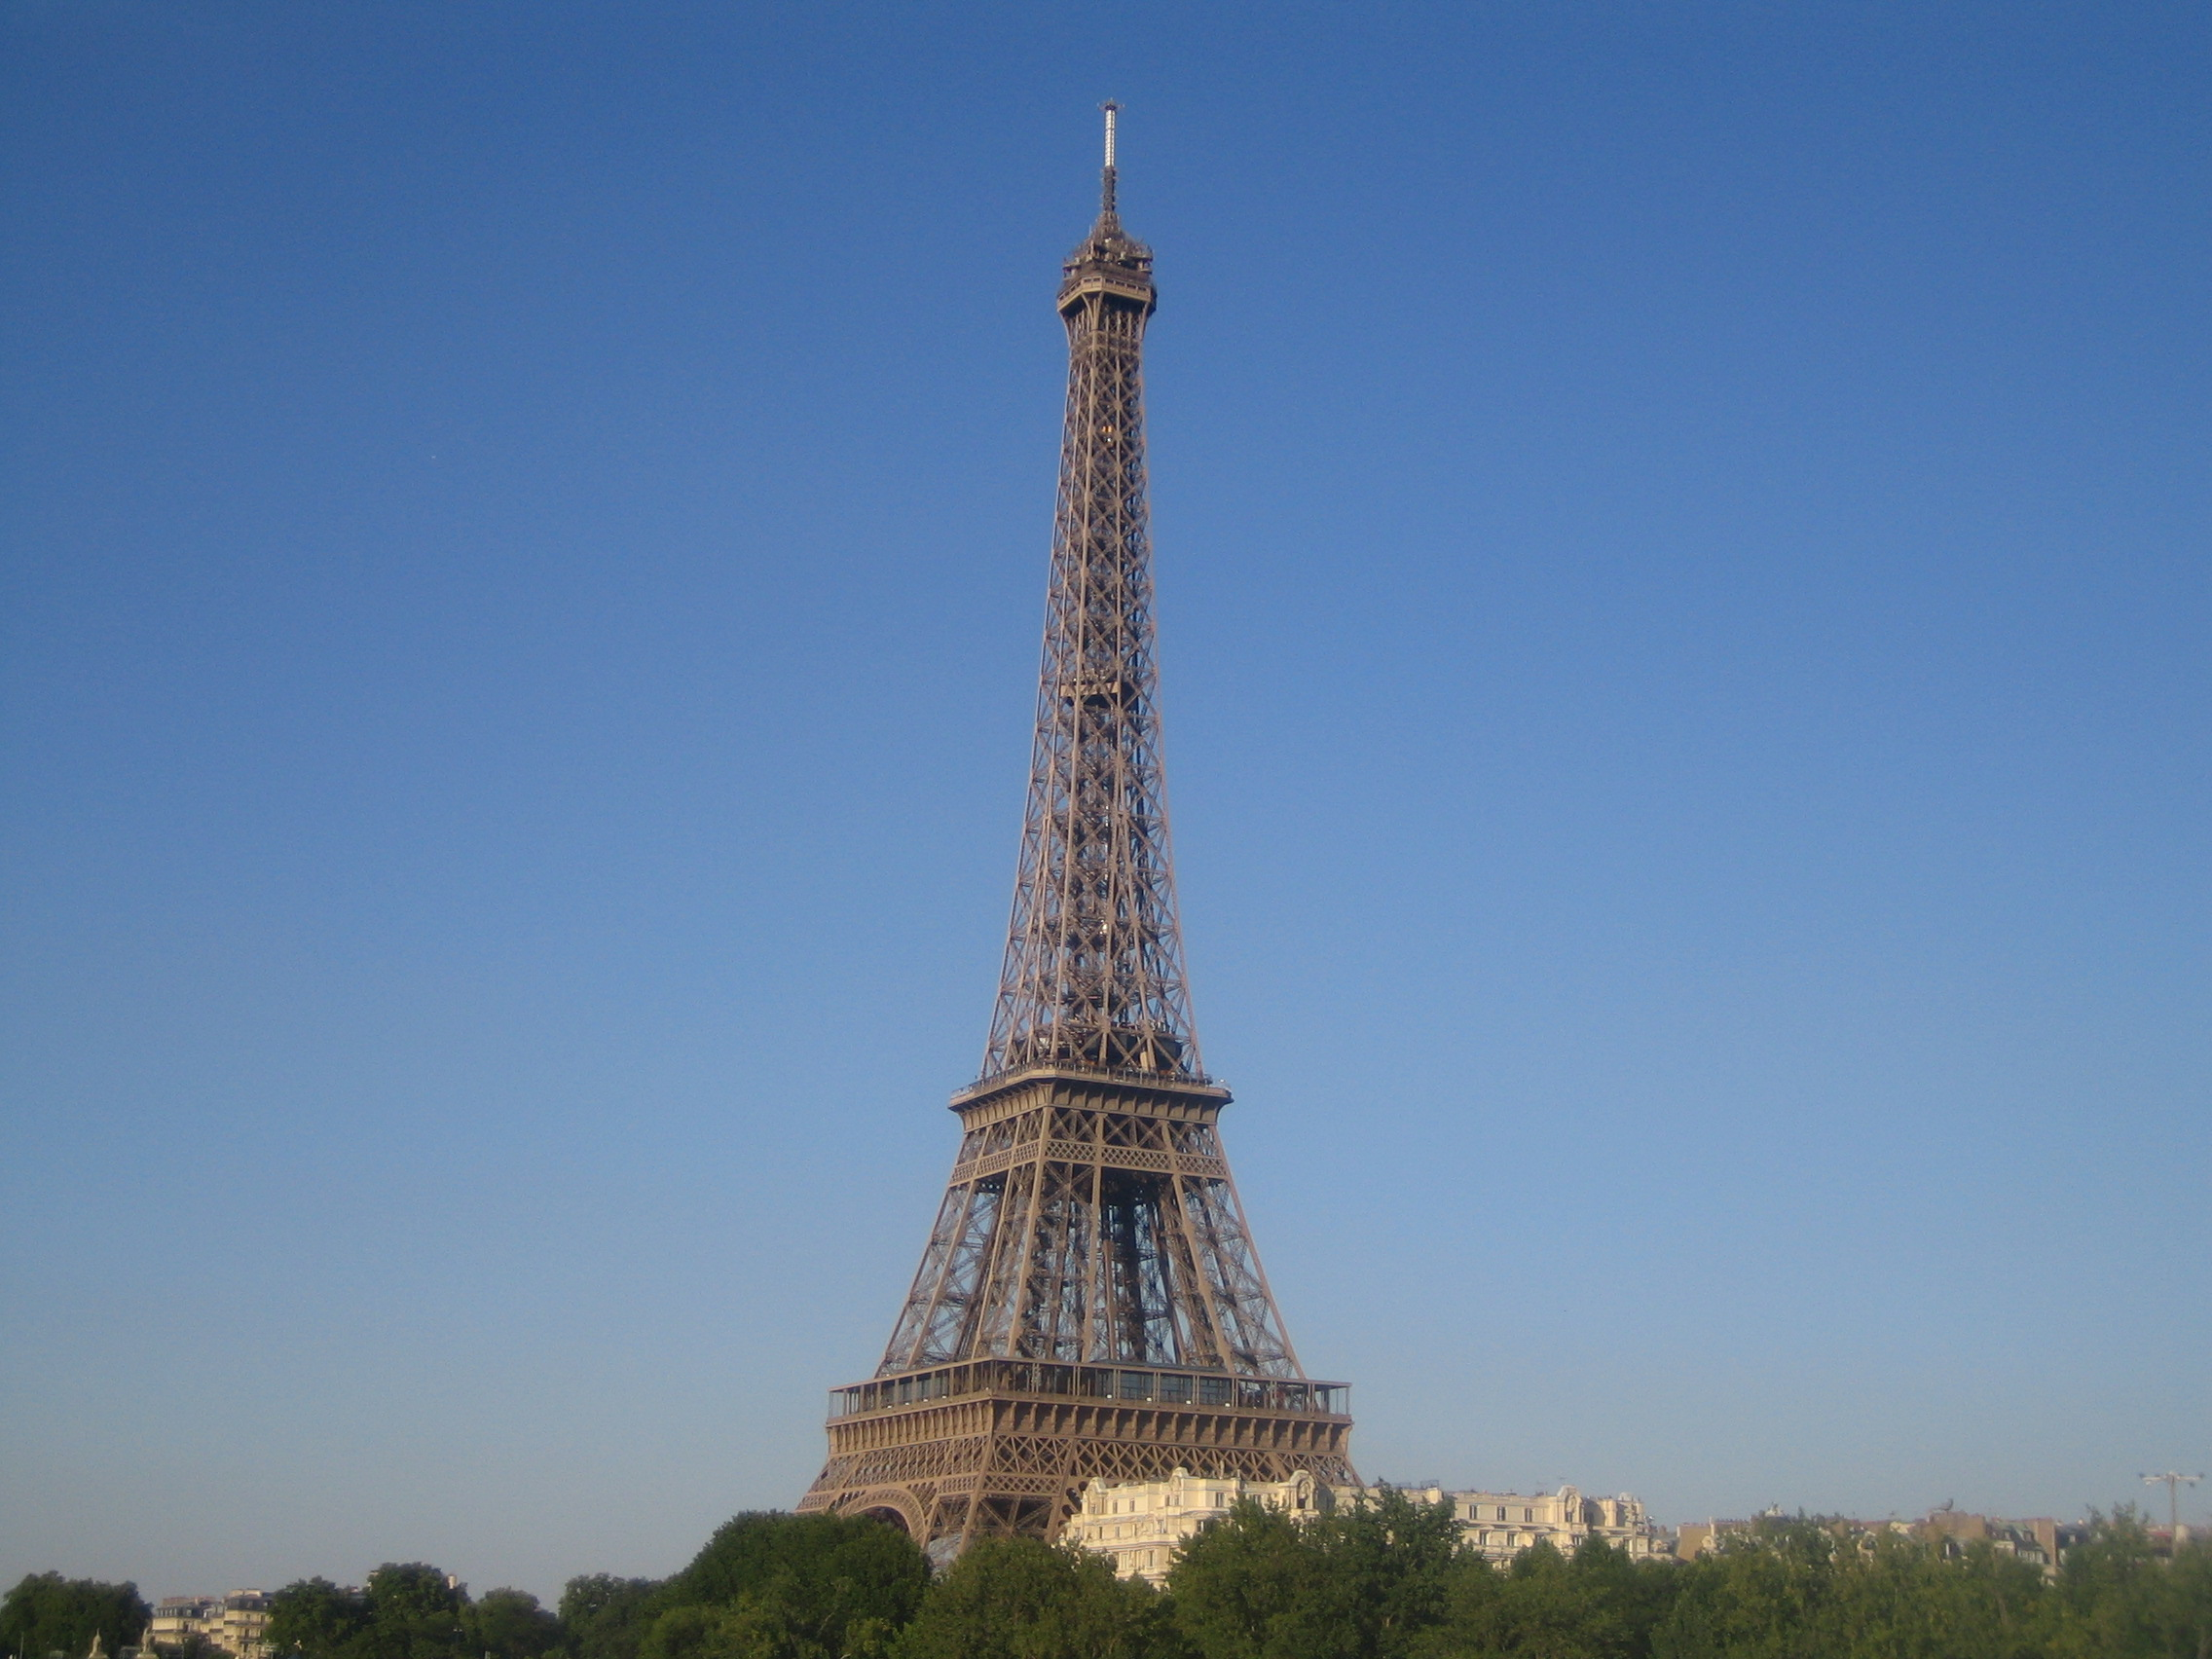 File jielbeaumadier tour eiffel paris wikimedia commons - Tour eiffel dimension ...